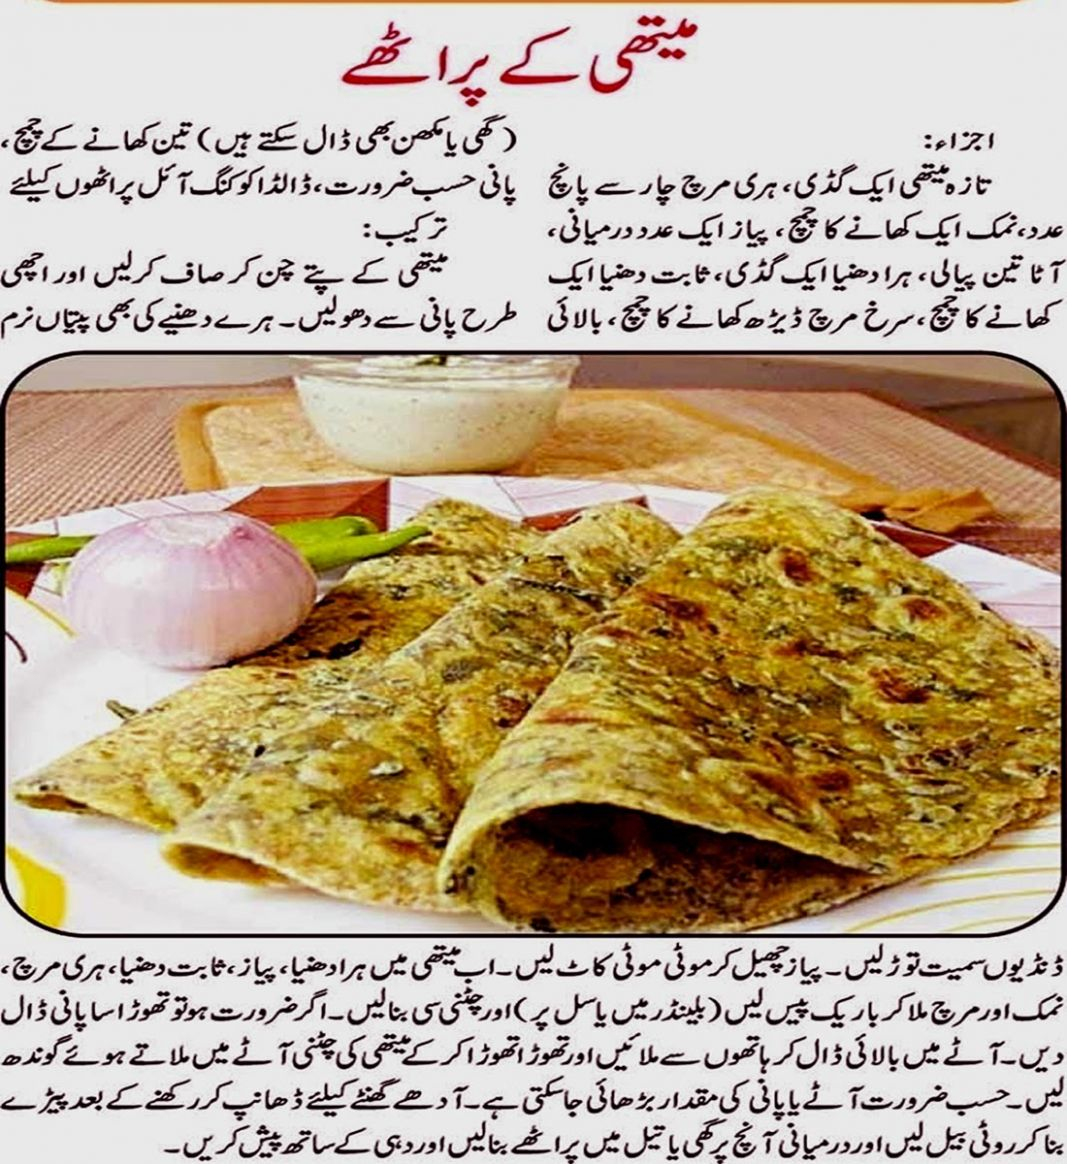 Foods Recipes In Urdu | Meri Urdu - Food Recipes Urdu